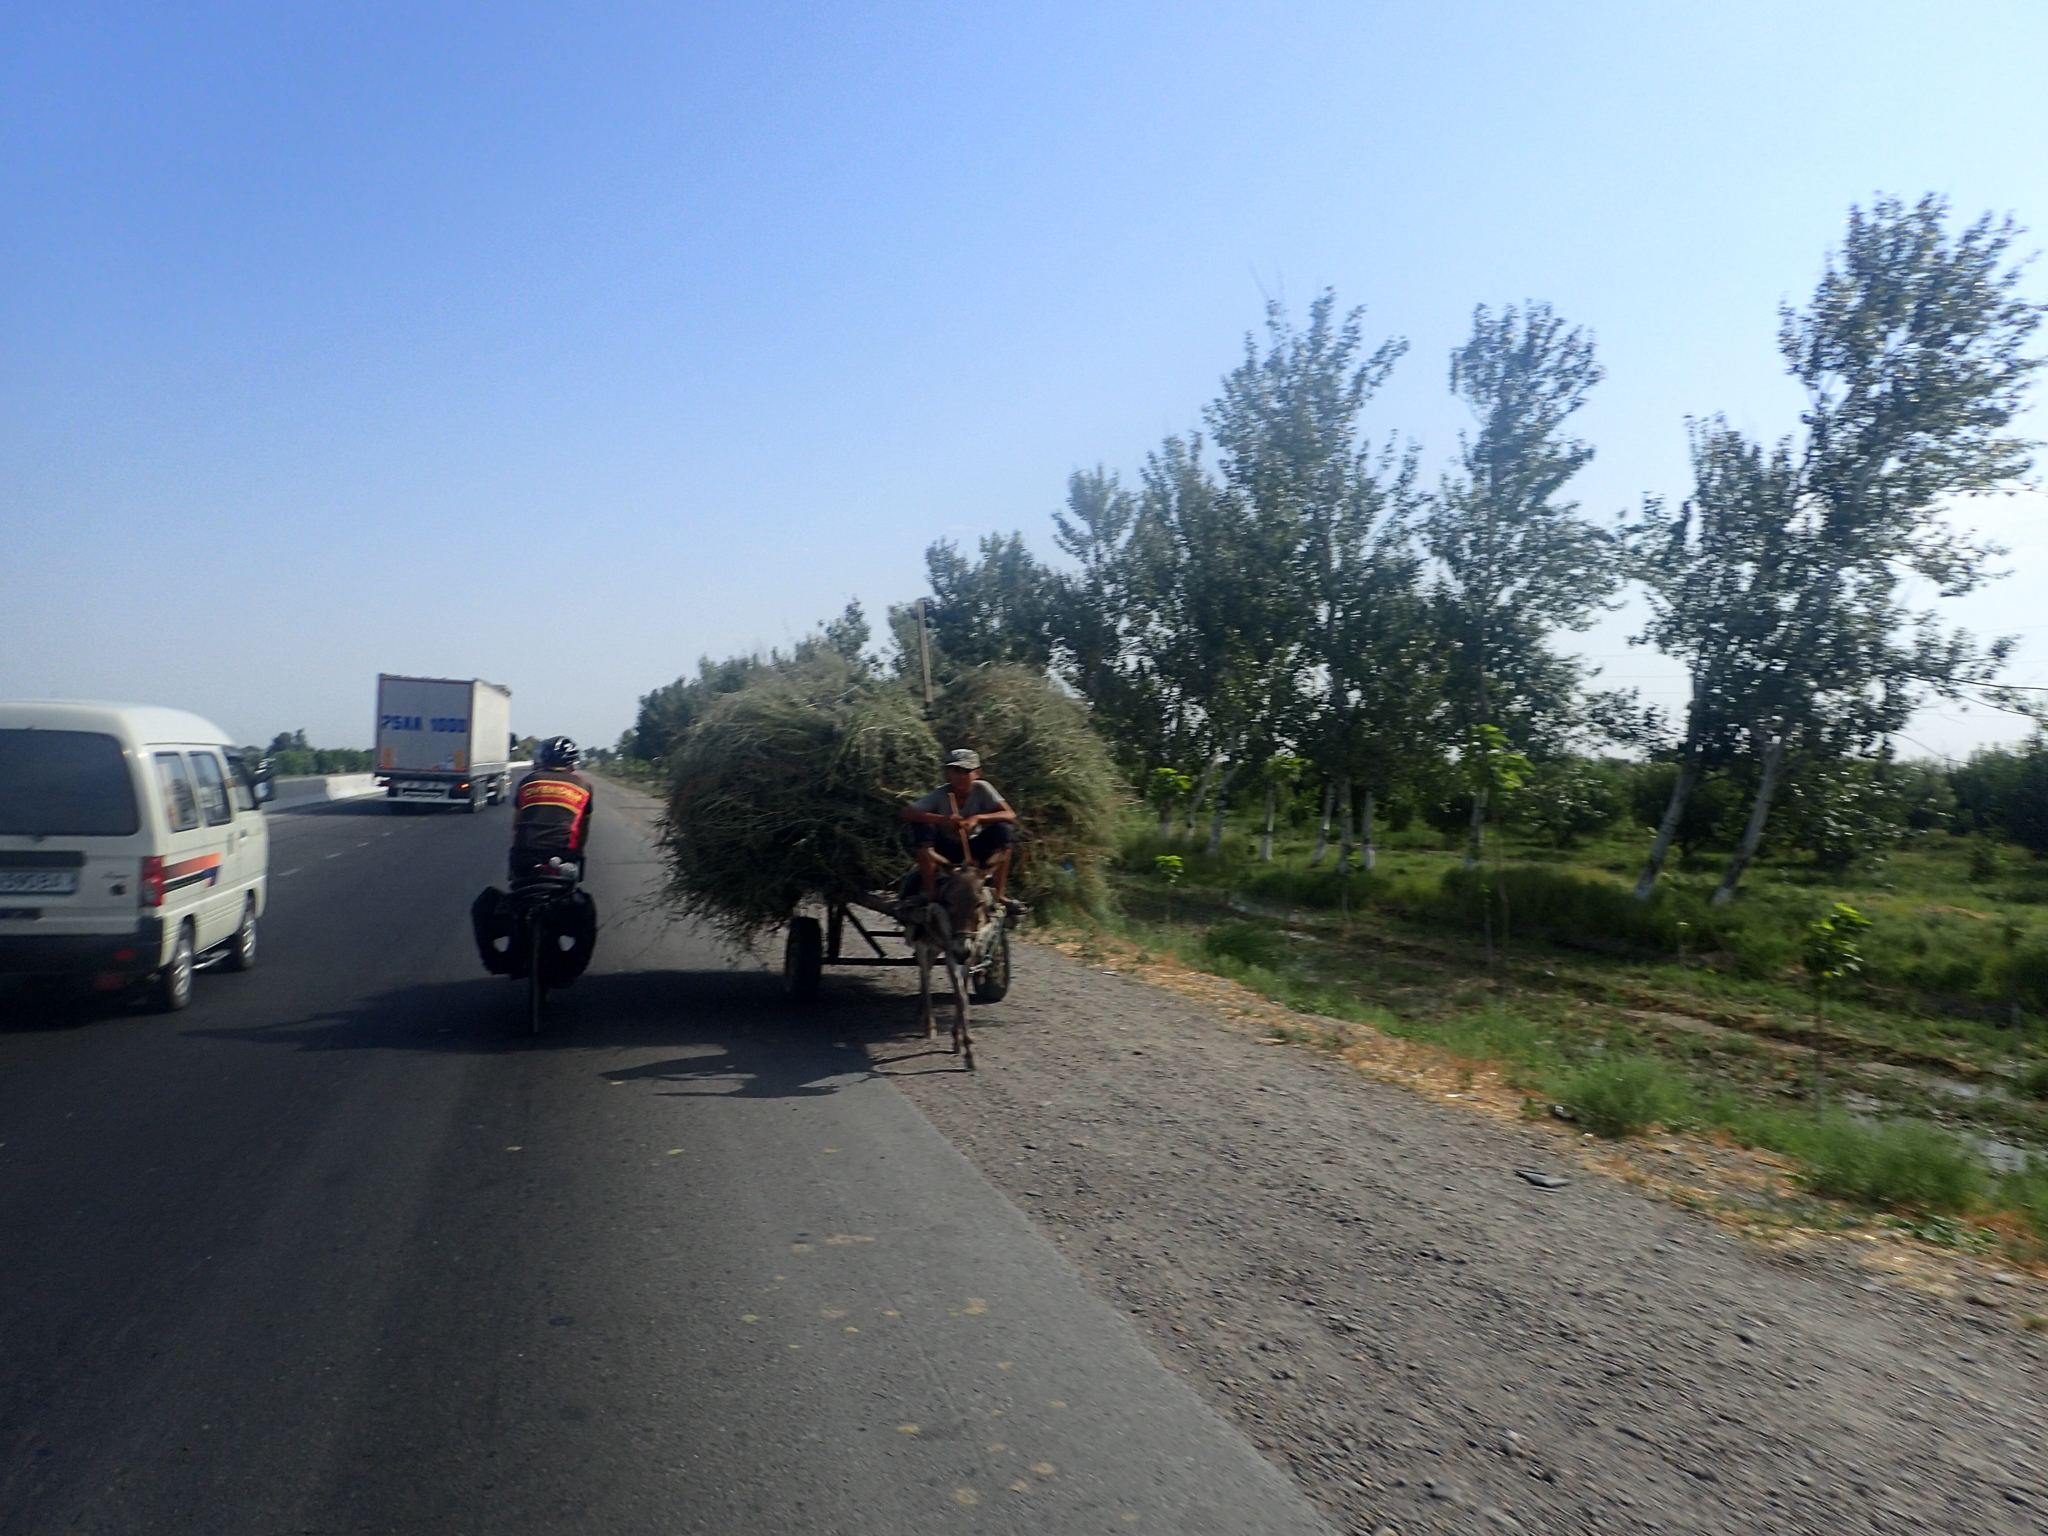 Hay-cart probably on the wrong side of the road. Not bothered!